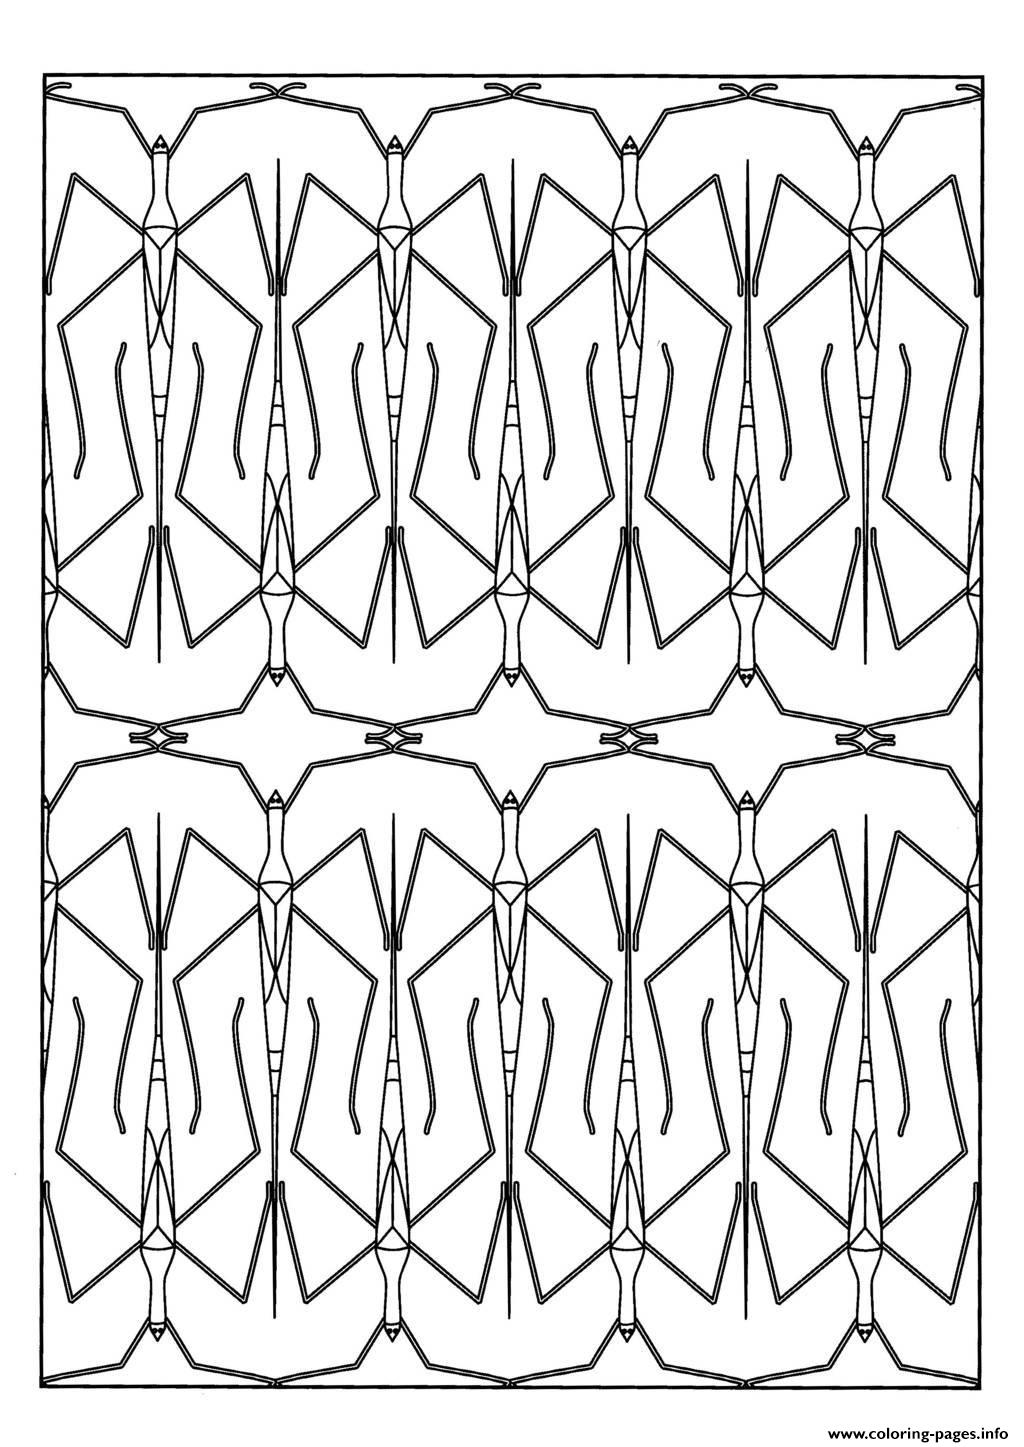 Adult Stick Insect Coloring Pages Printable